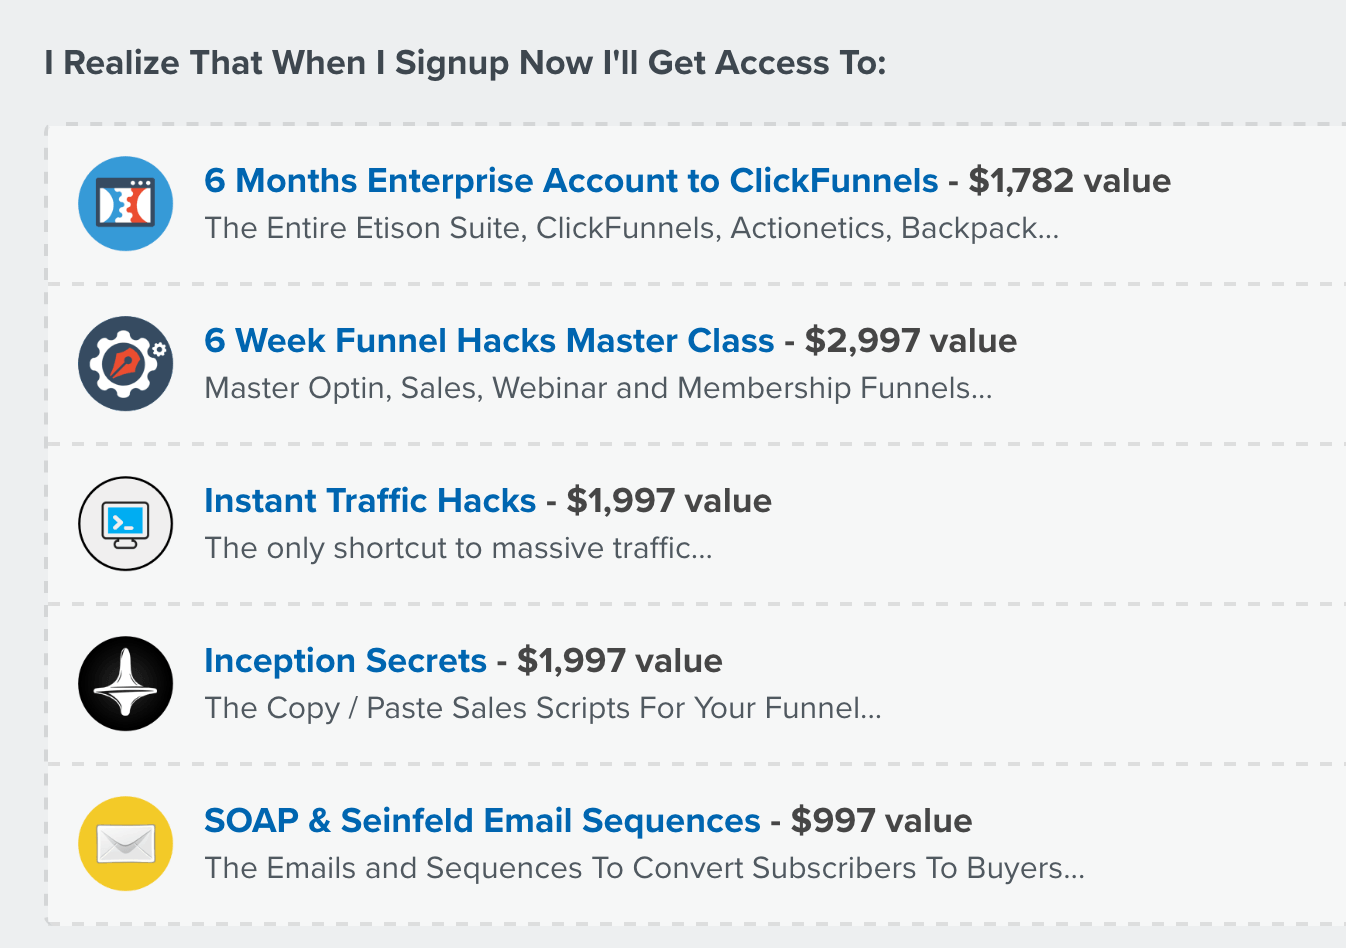 Clickfunnels What Are They